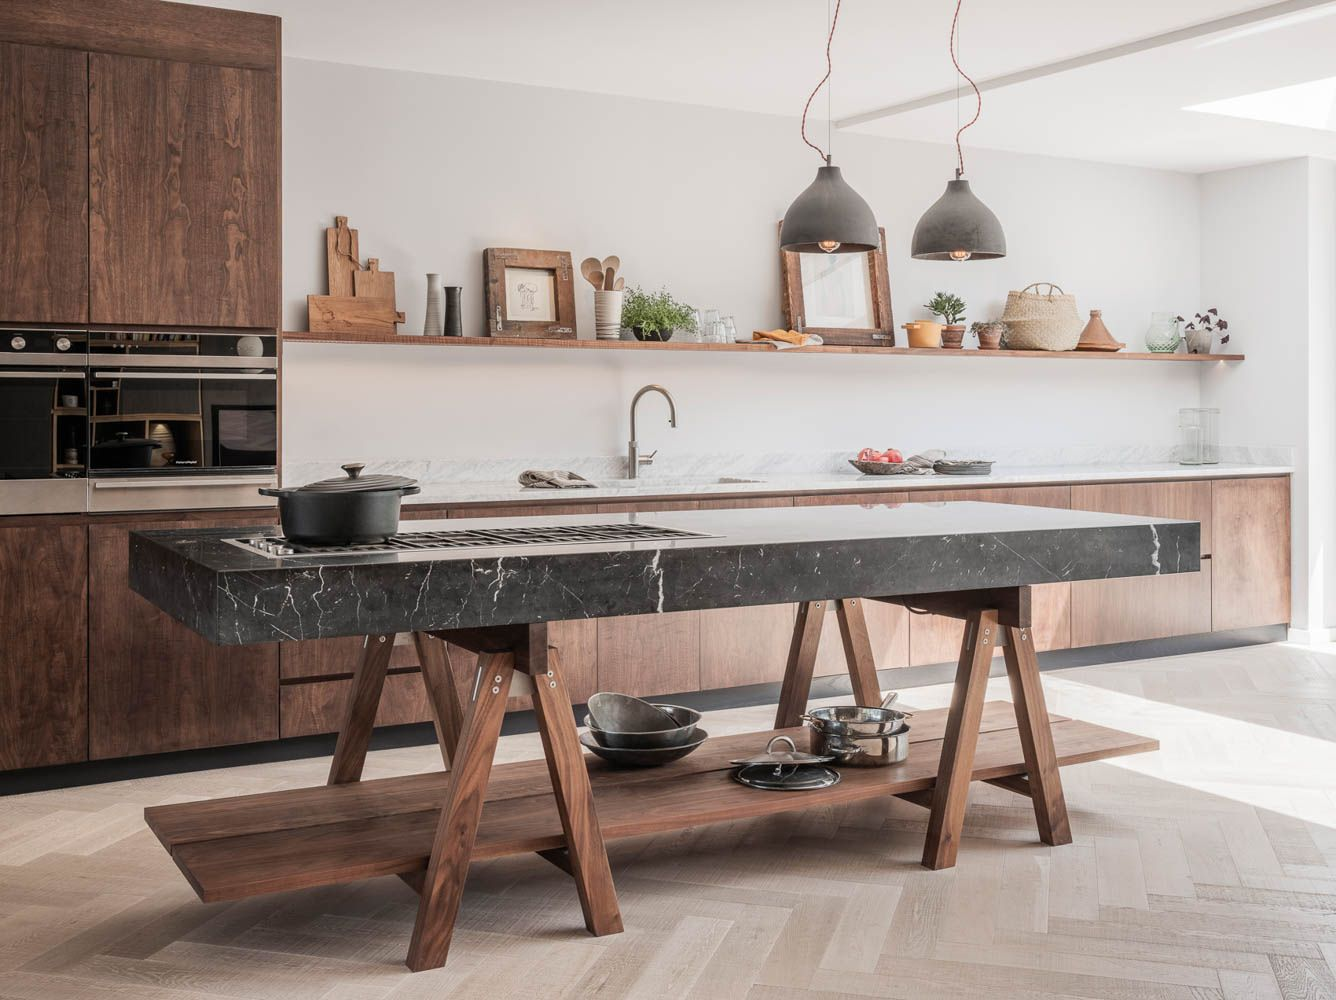 Best European Kitchen Trends For 2019 Kitchen trends